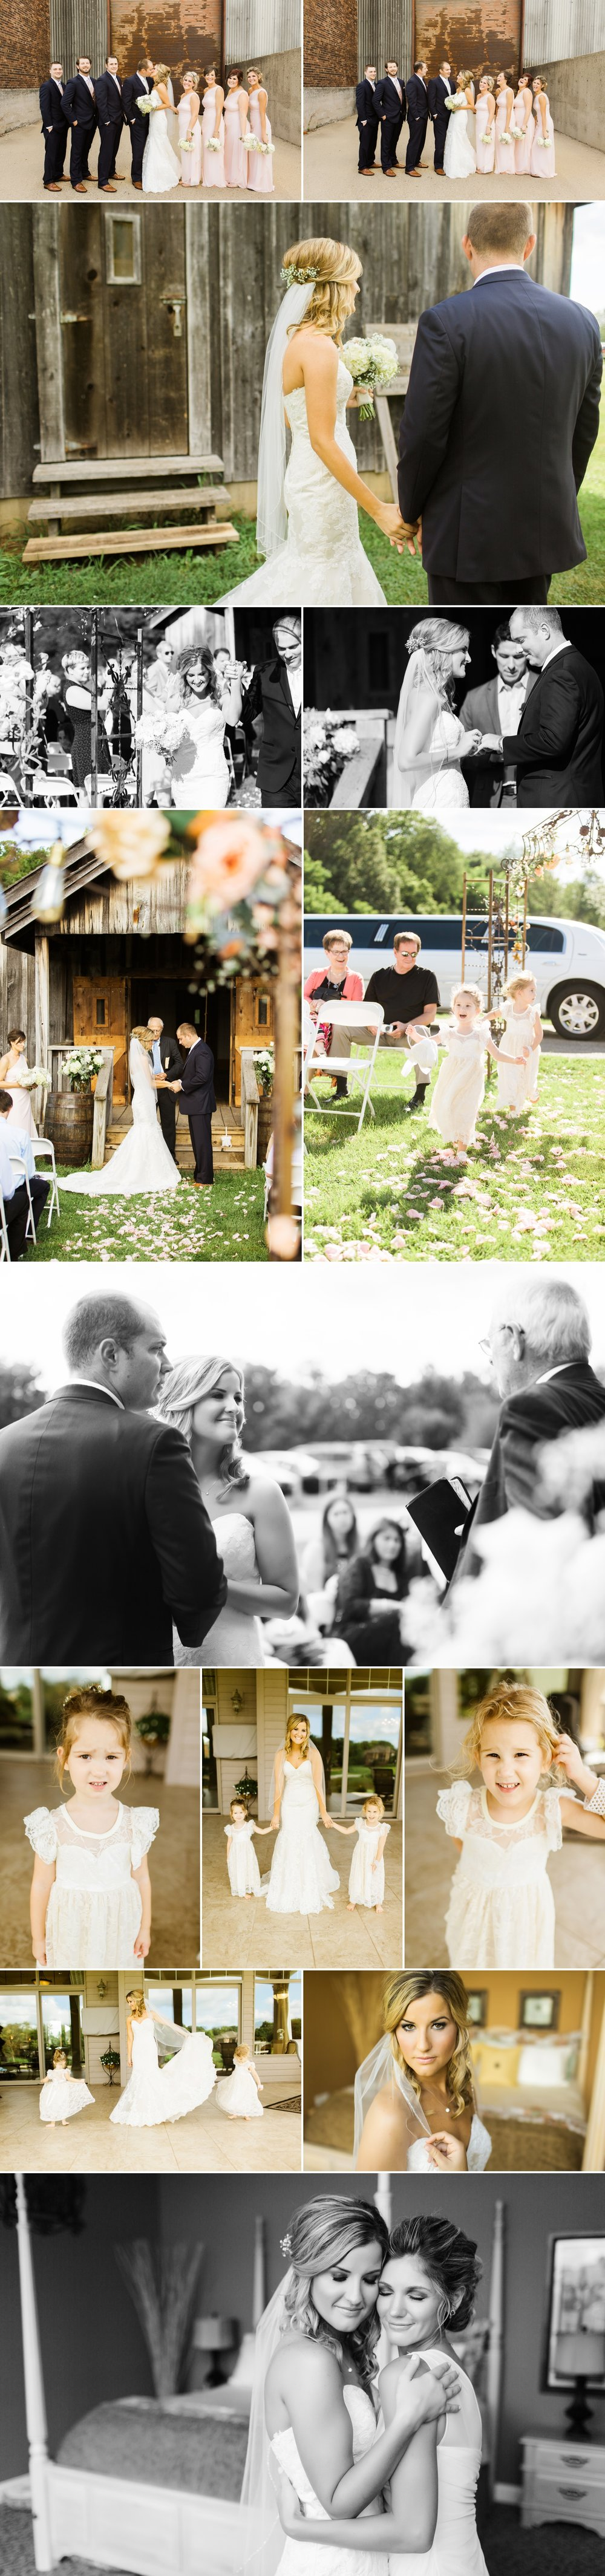 Mr. and Mrs. Flower Collage 9.jpg